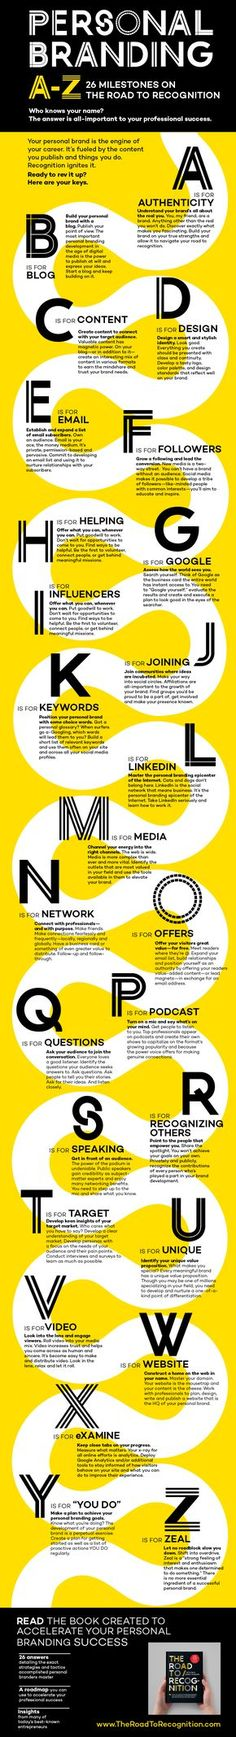 An A to Z Guide to Personal Branding   Convince and Convert: Social Media Consulting and Content Marketing Consulting